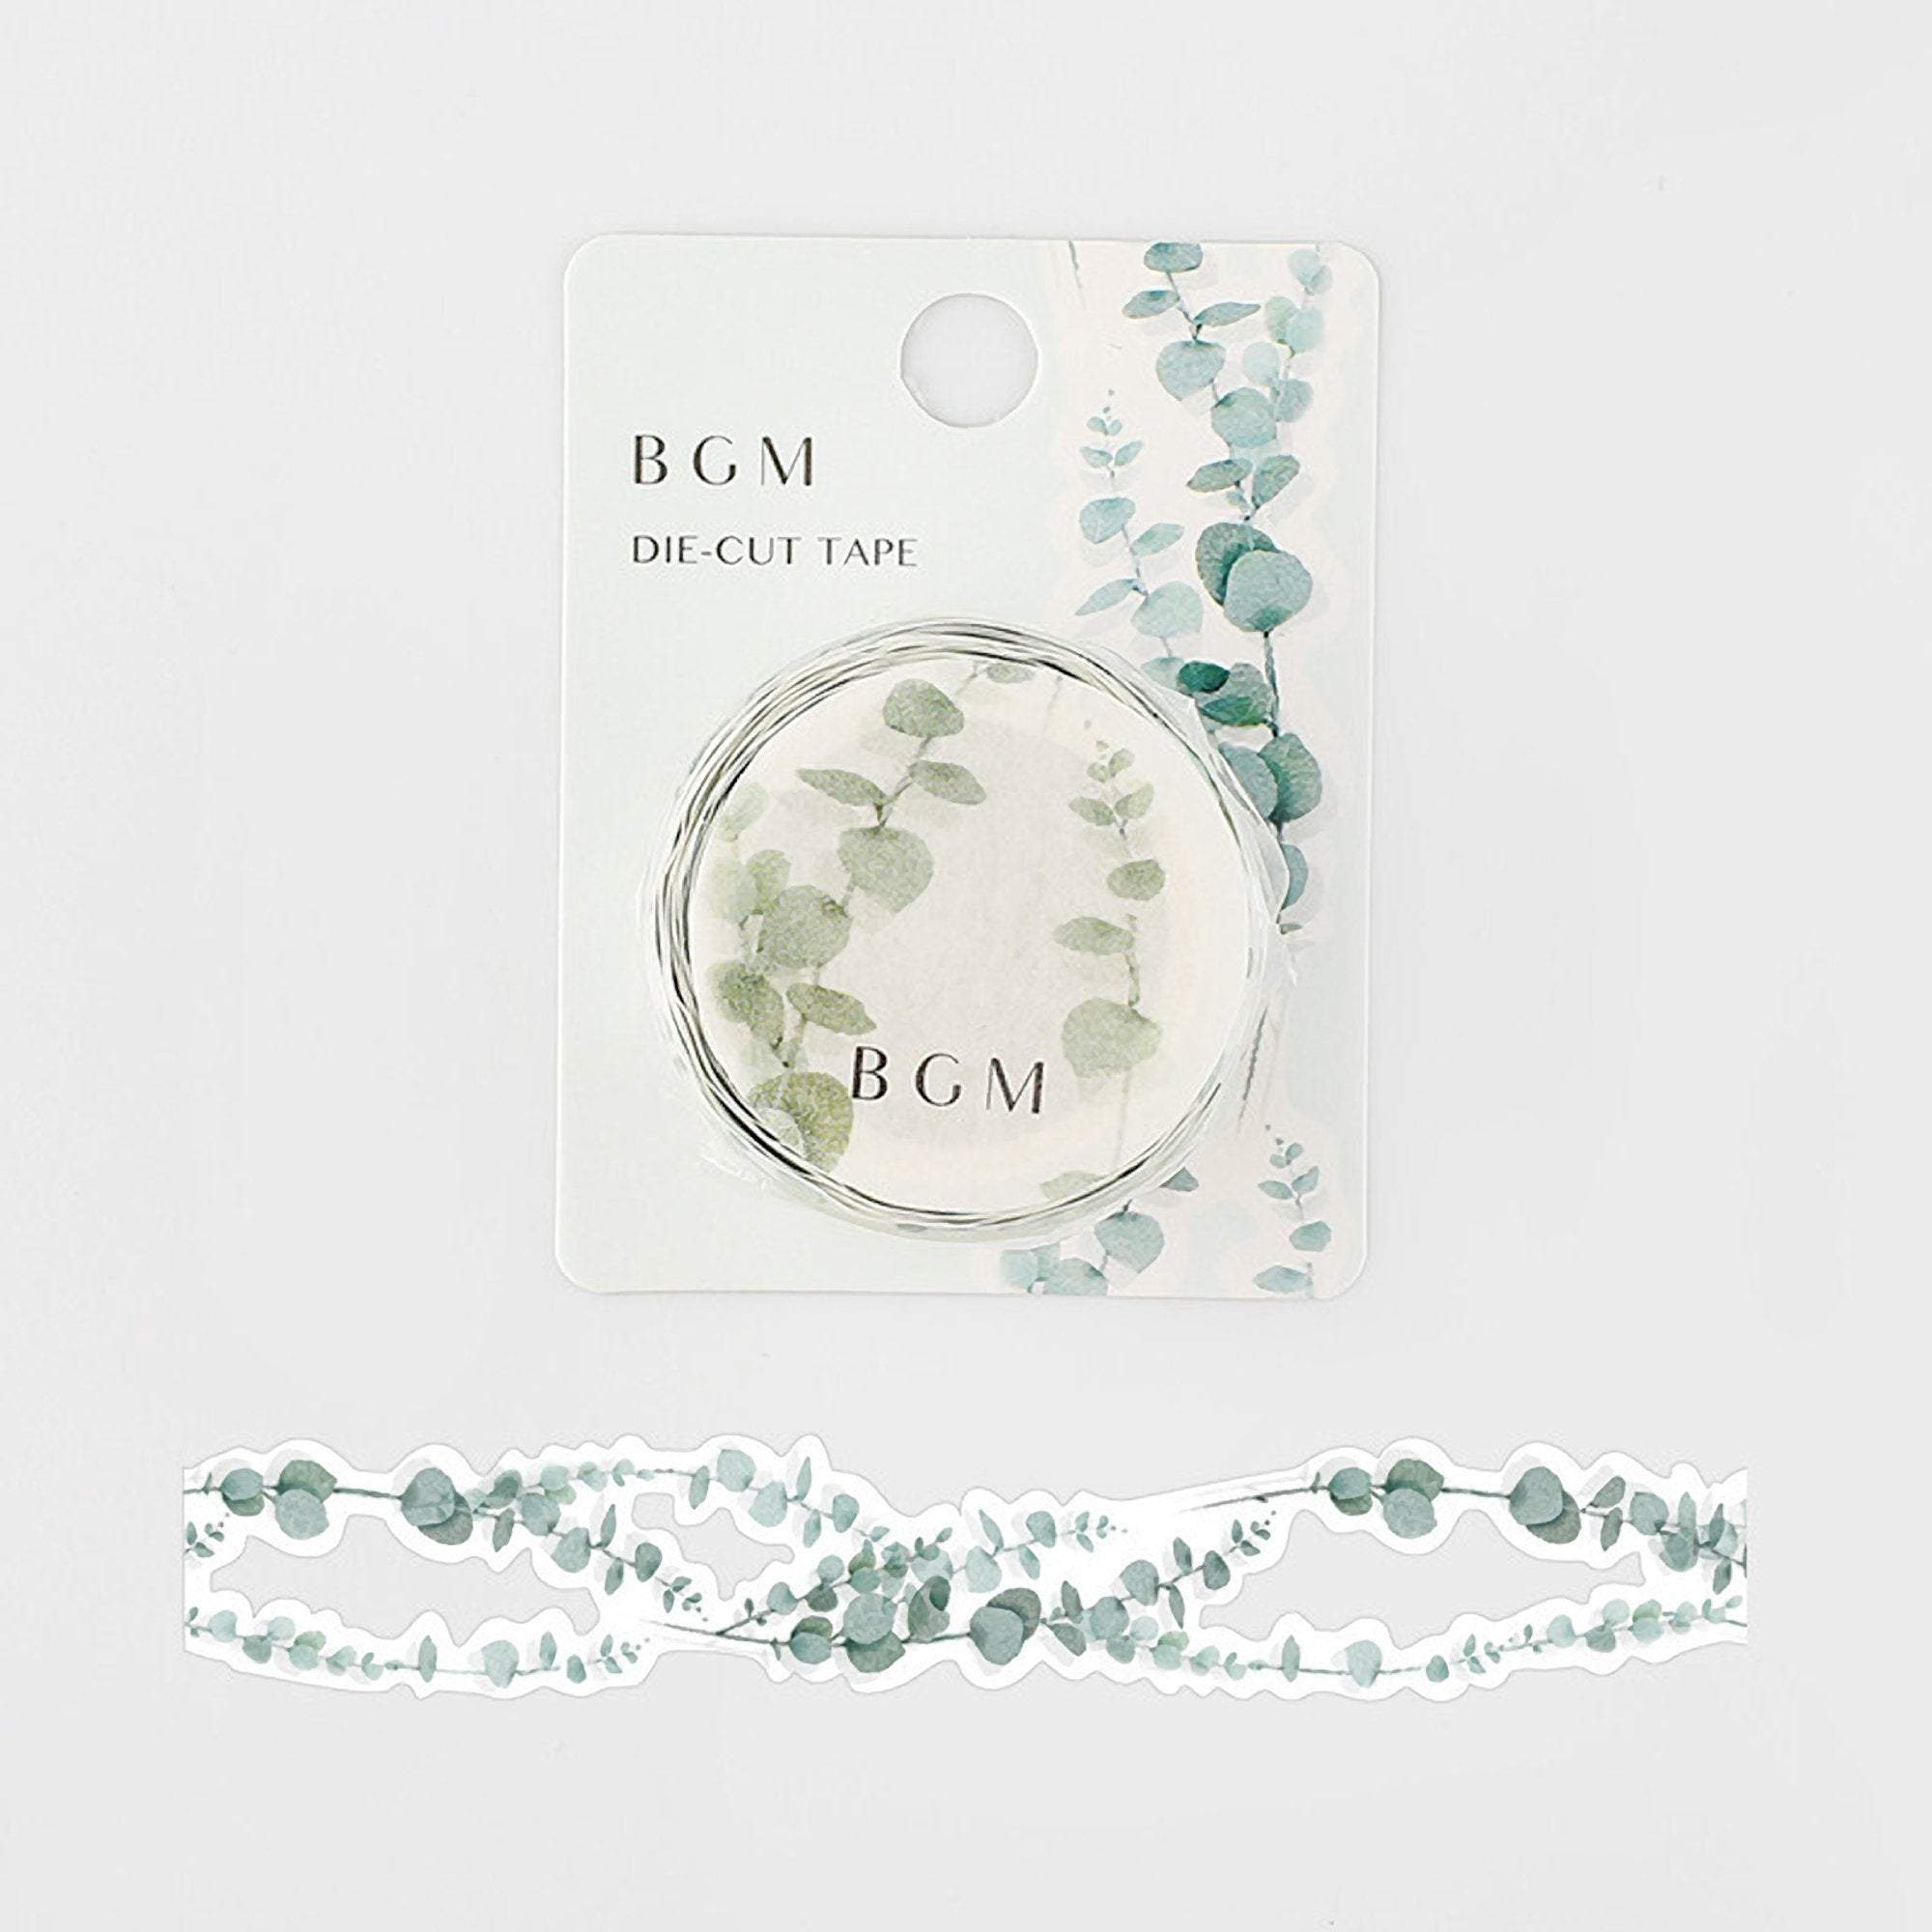 BGM Lace Die-Cut Eucalyptus Koala Washi Tape - The Stationery Life!